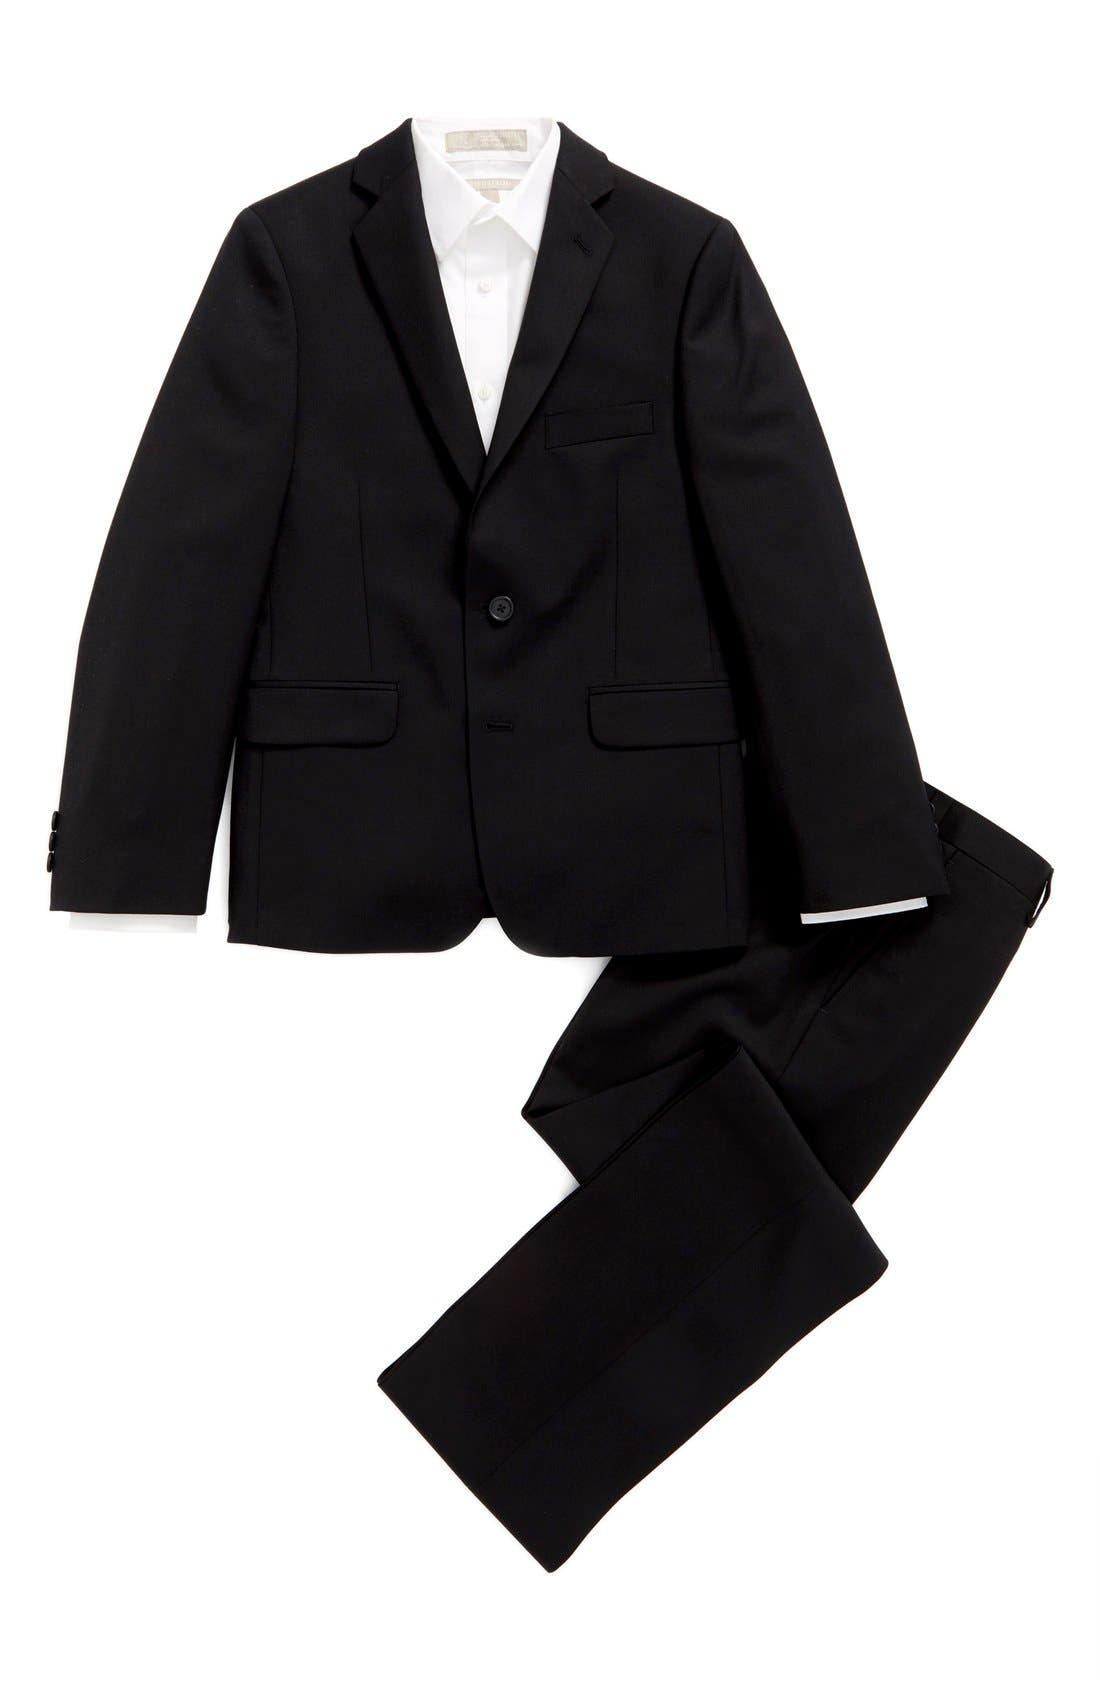 DKNY 'Tonal Neat' Wool Suit (Big Boys)